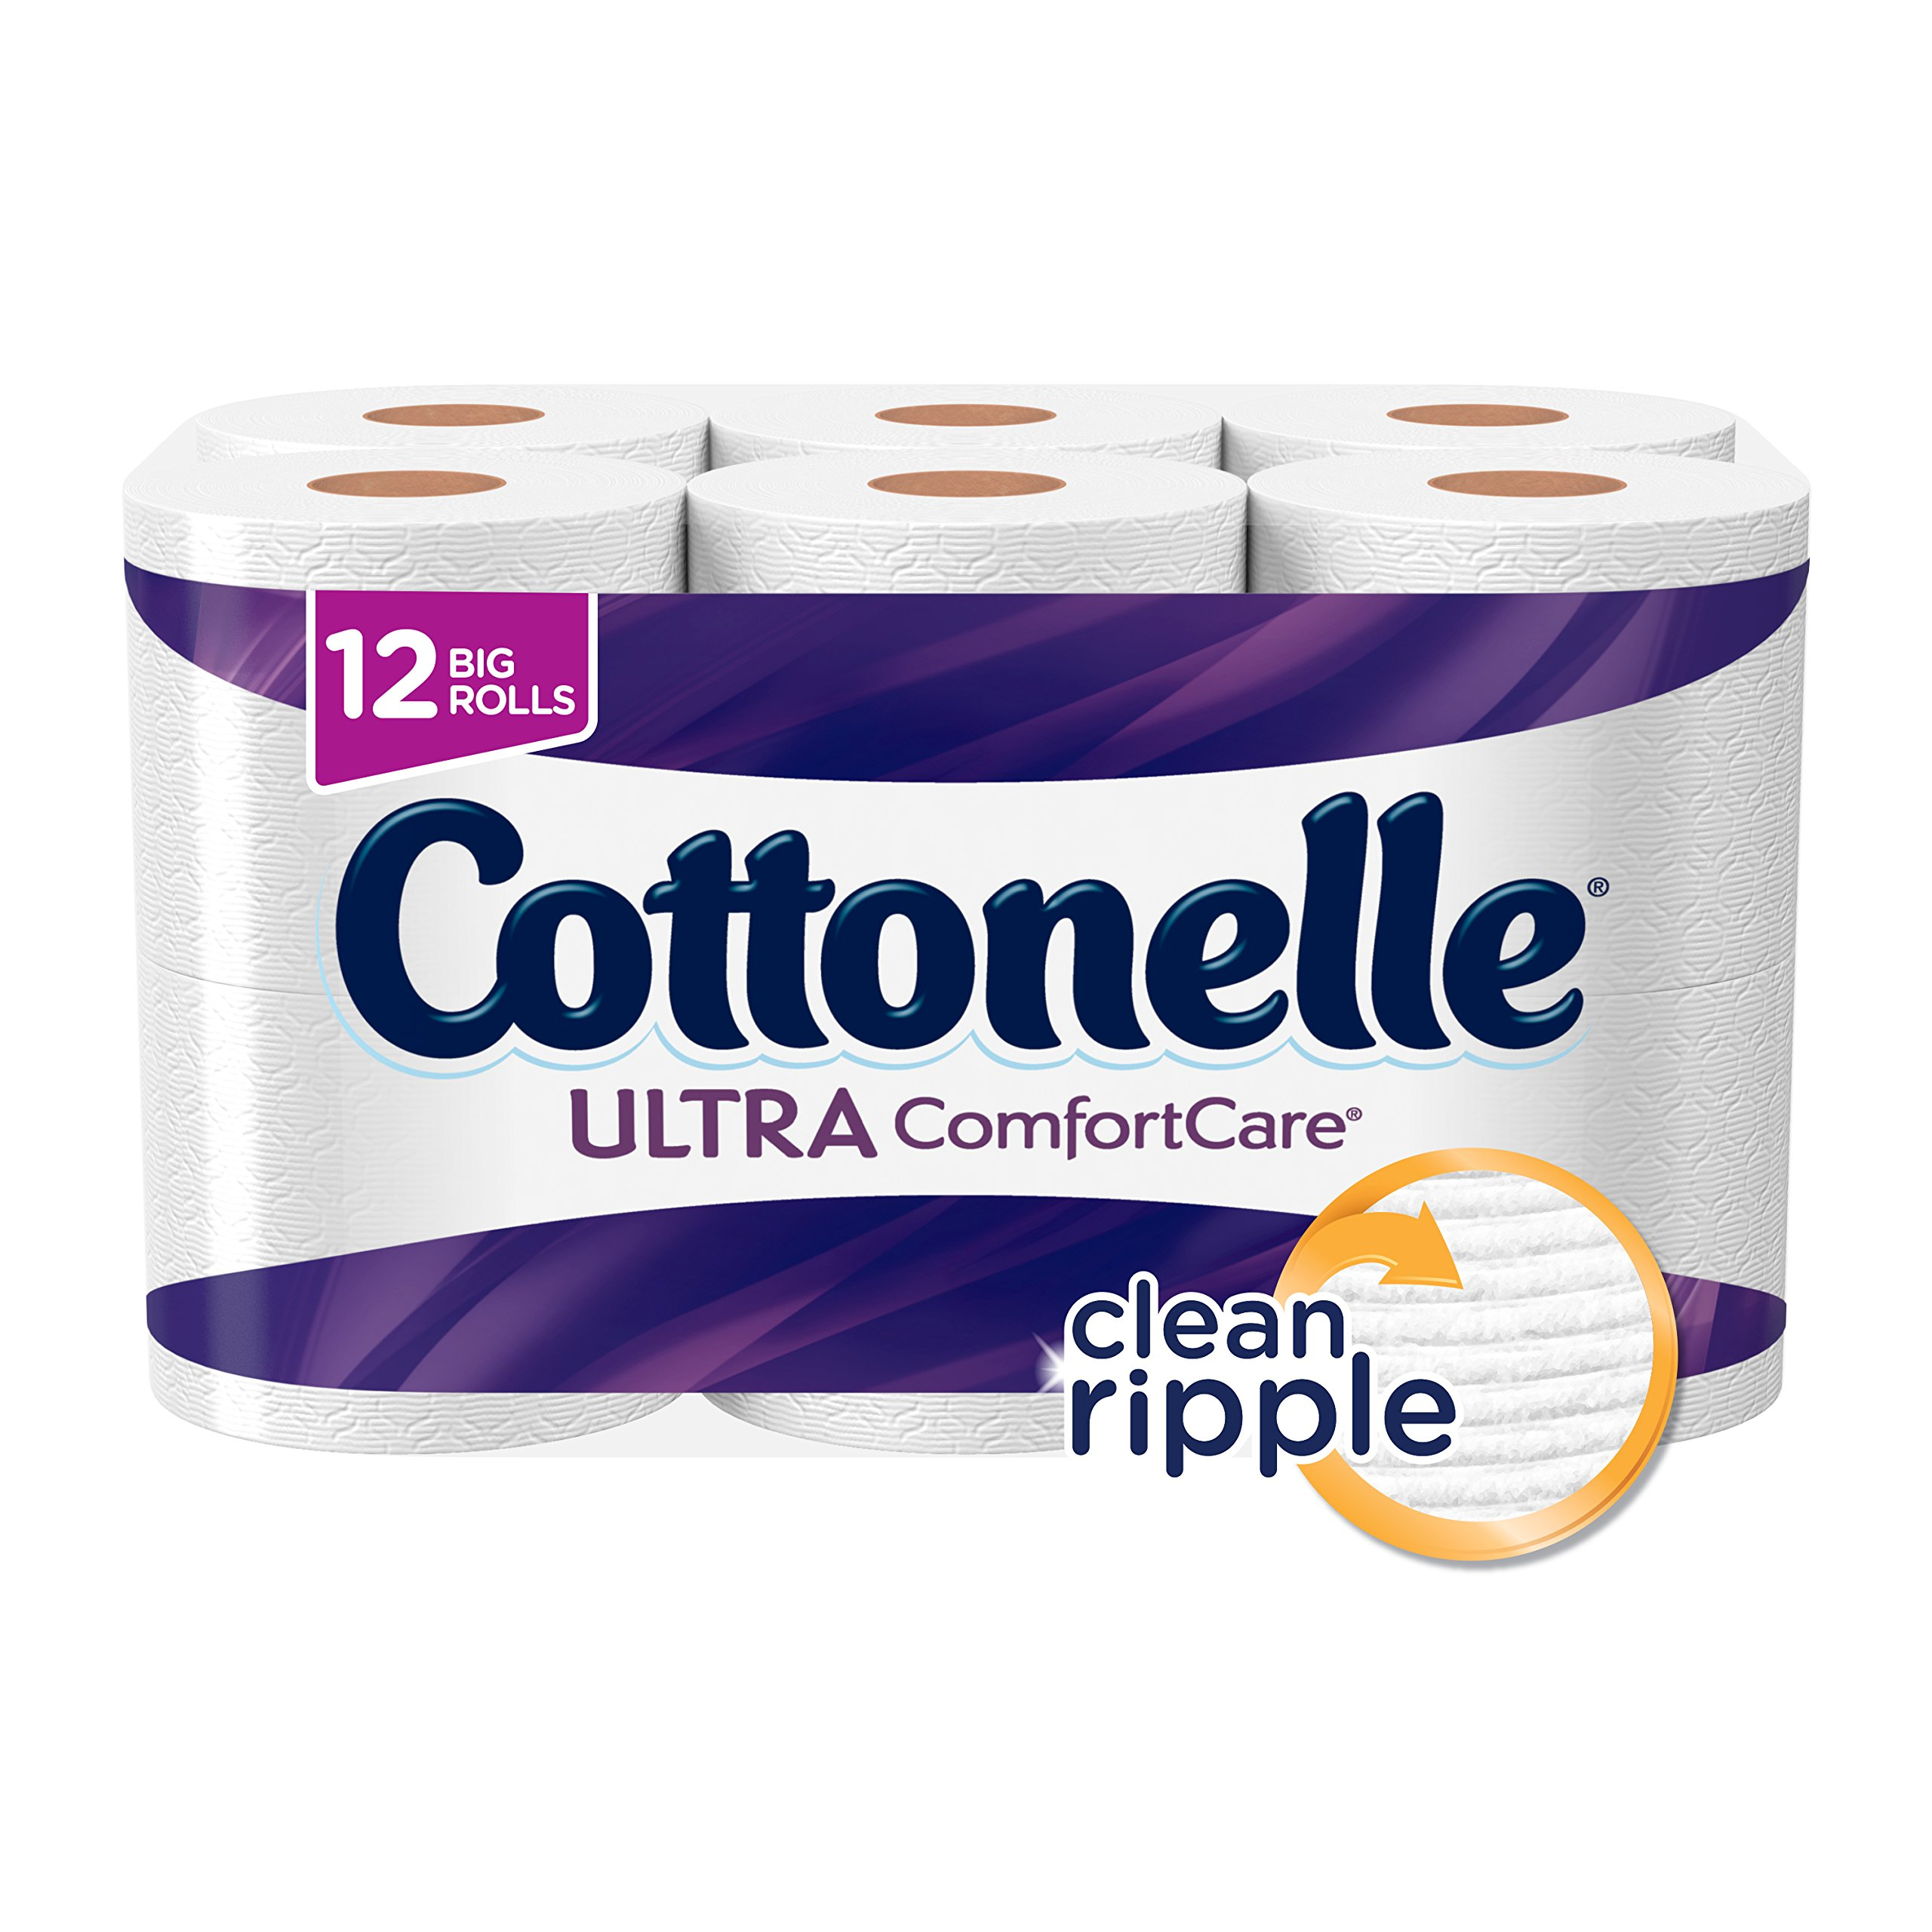 Cottonelle Ultra ComfortCare Big Roll Toilet Paper, Bath Tissue, 12 Toilet Paper Rolls